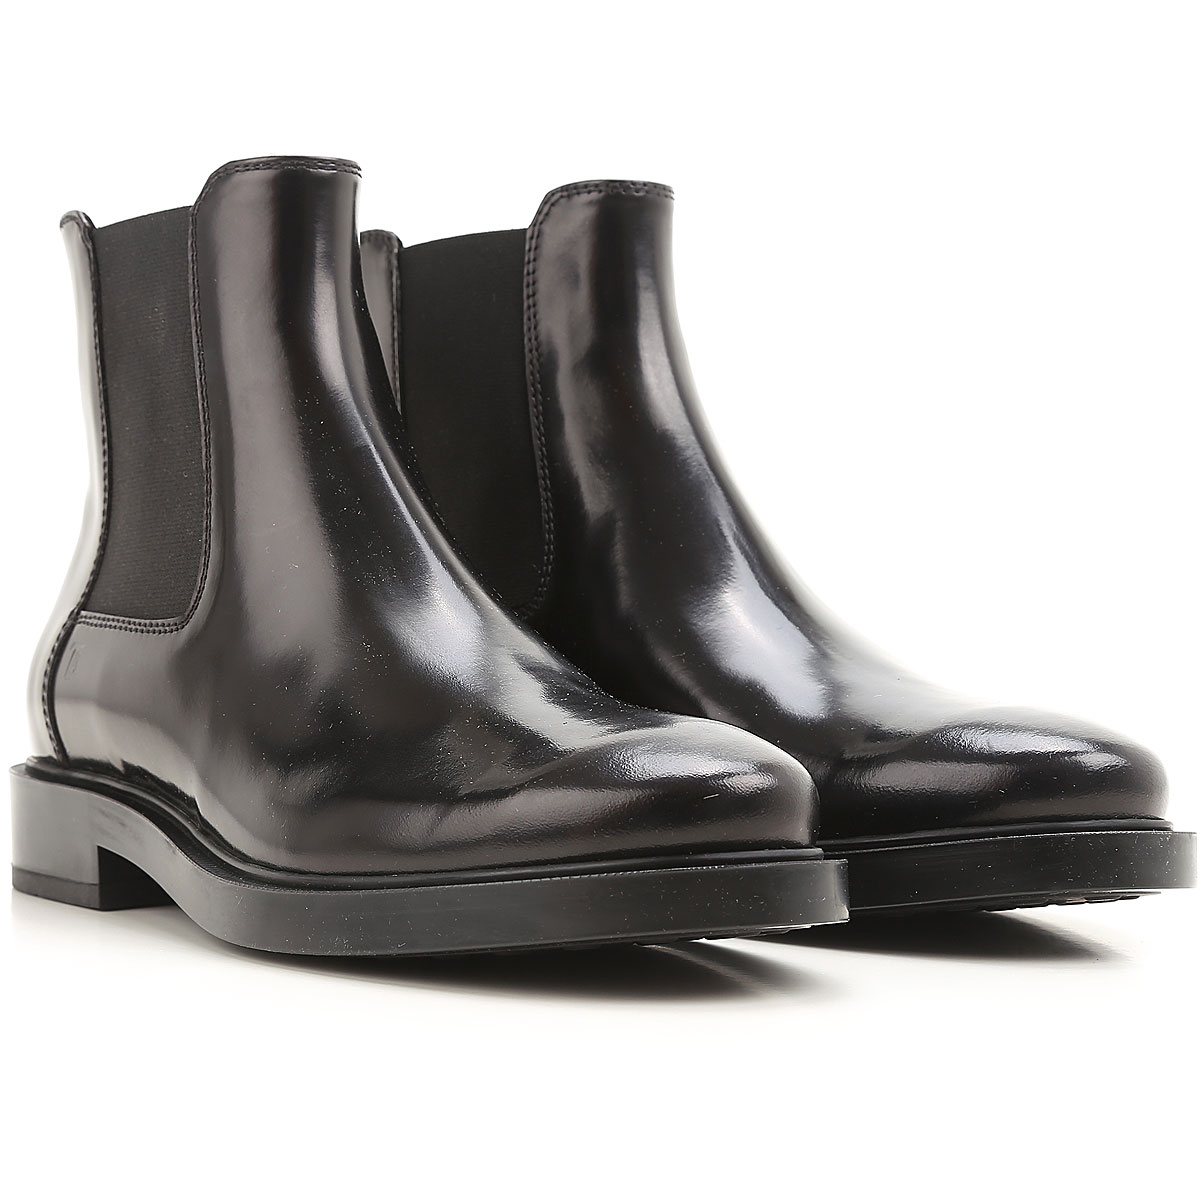 Tods Boots for Women, Booties, Black, Leather, 2019, 11 5 6 6.5 7 8 8.5 9